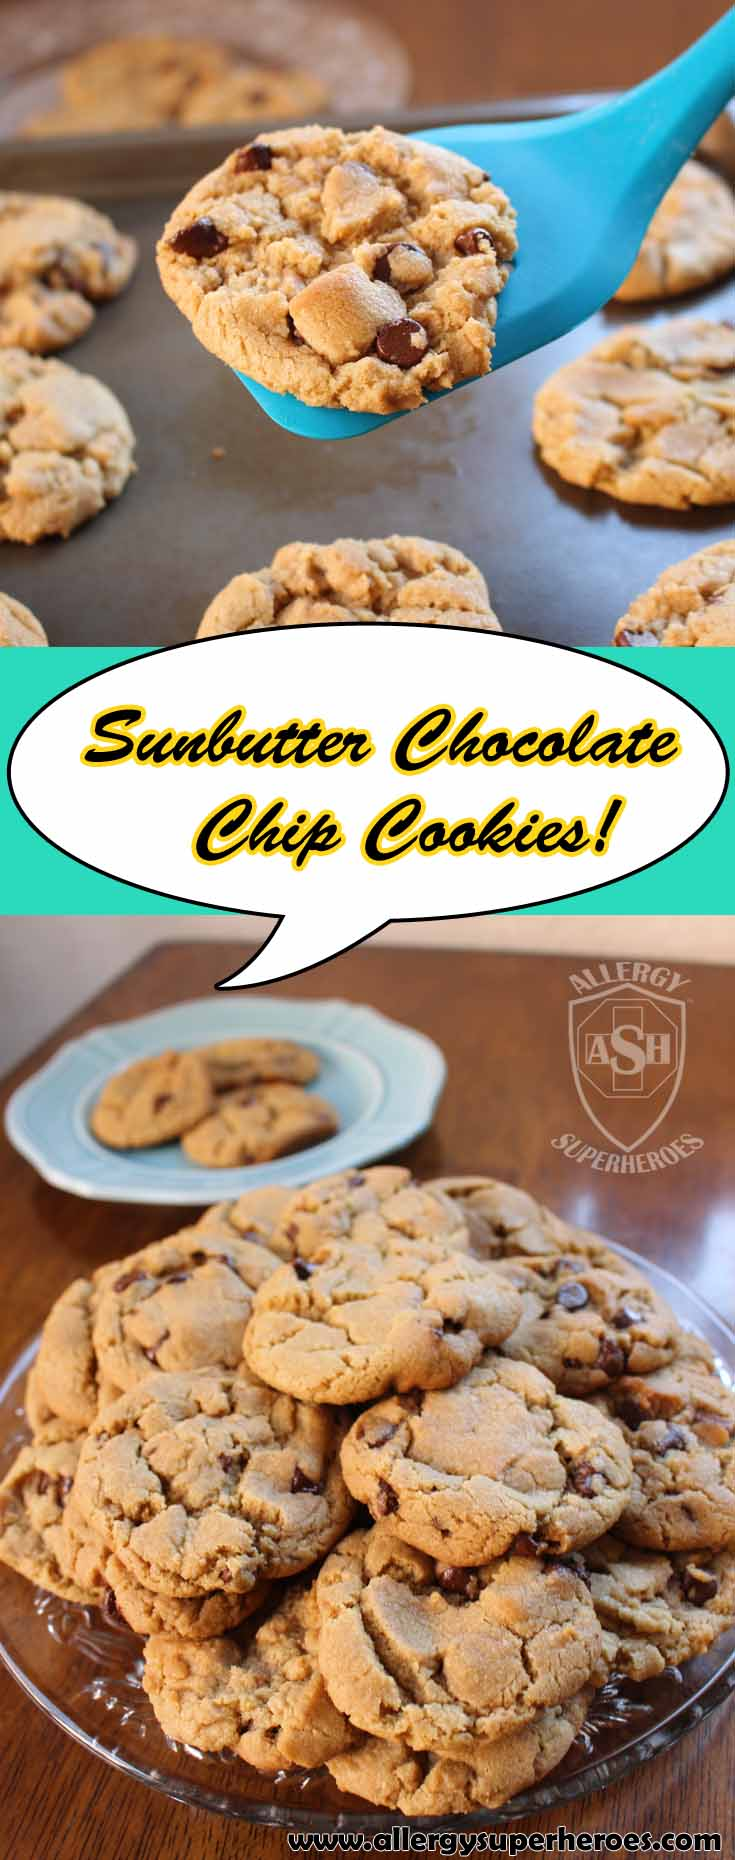 Scrumptious Sunbutter Chocolate Chip Cookies!